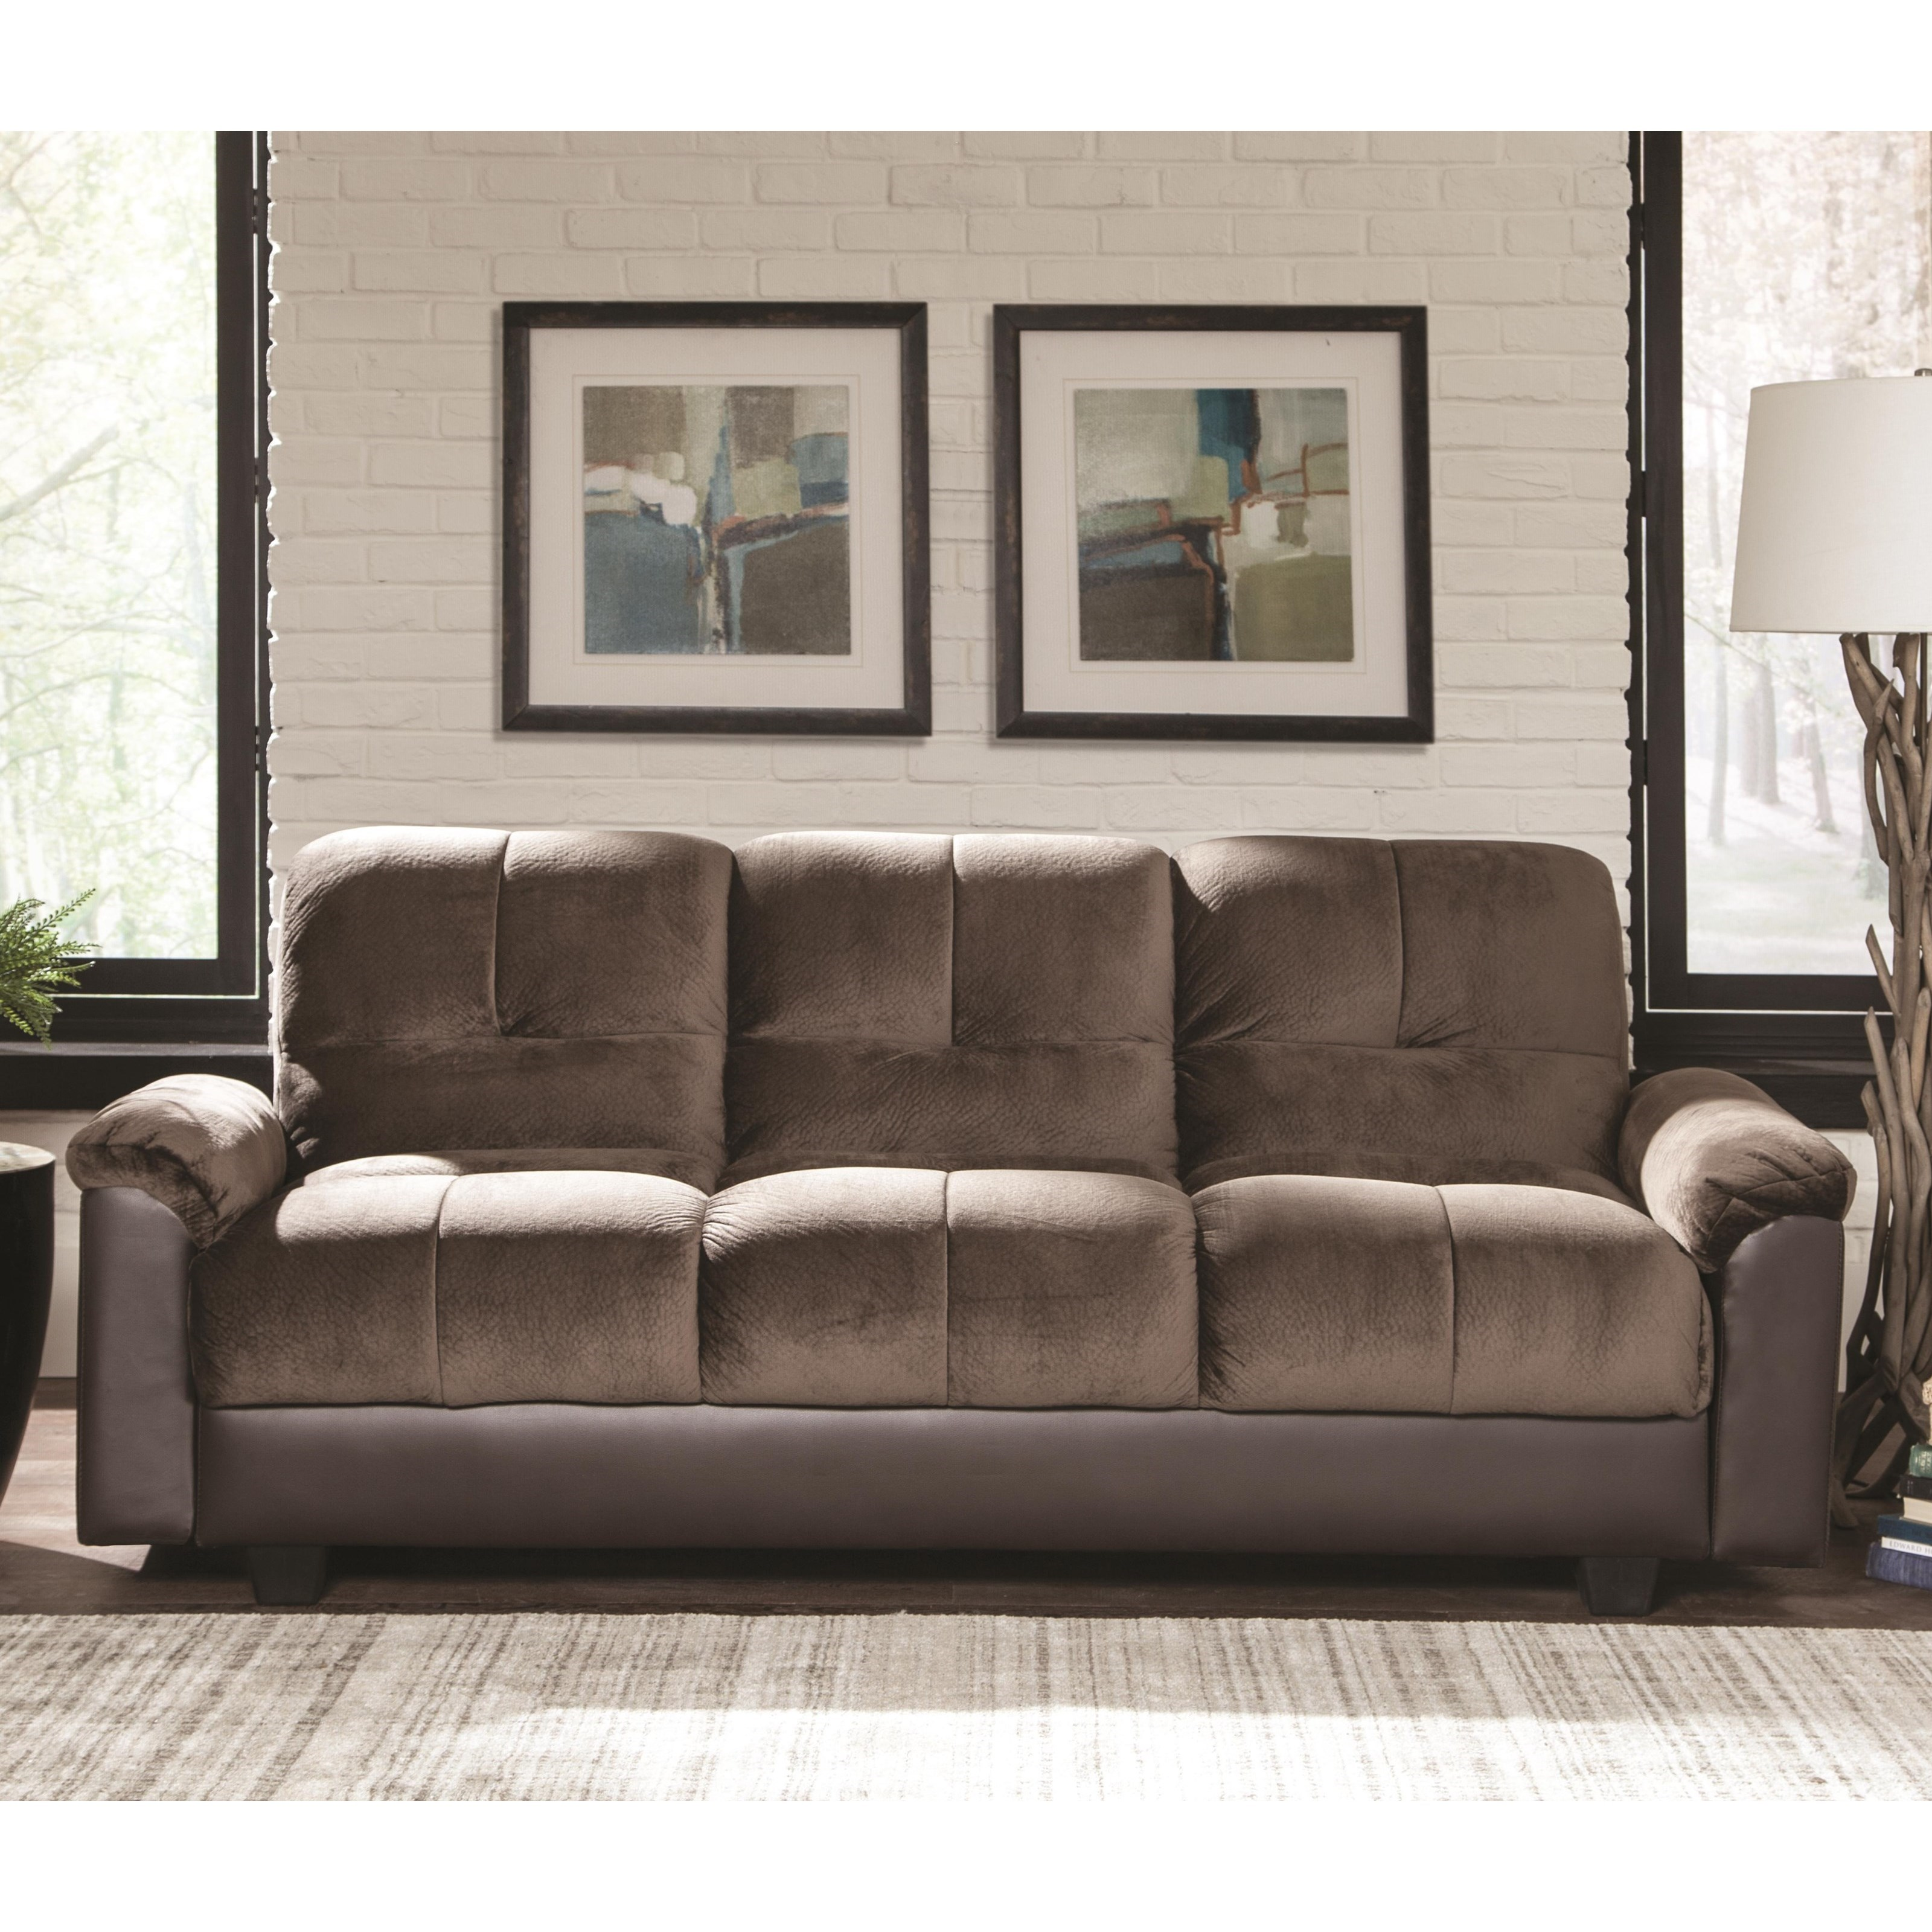 Coaster Sofa Beds And Futons 360007 Two Tone Sofa Bed With